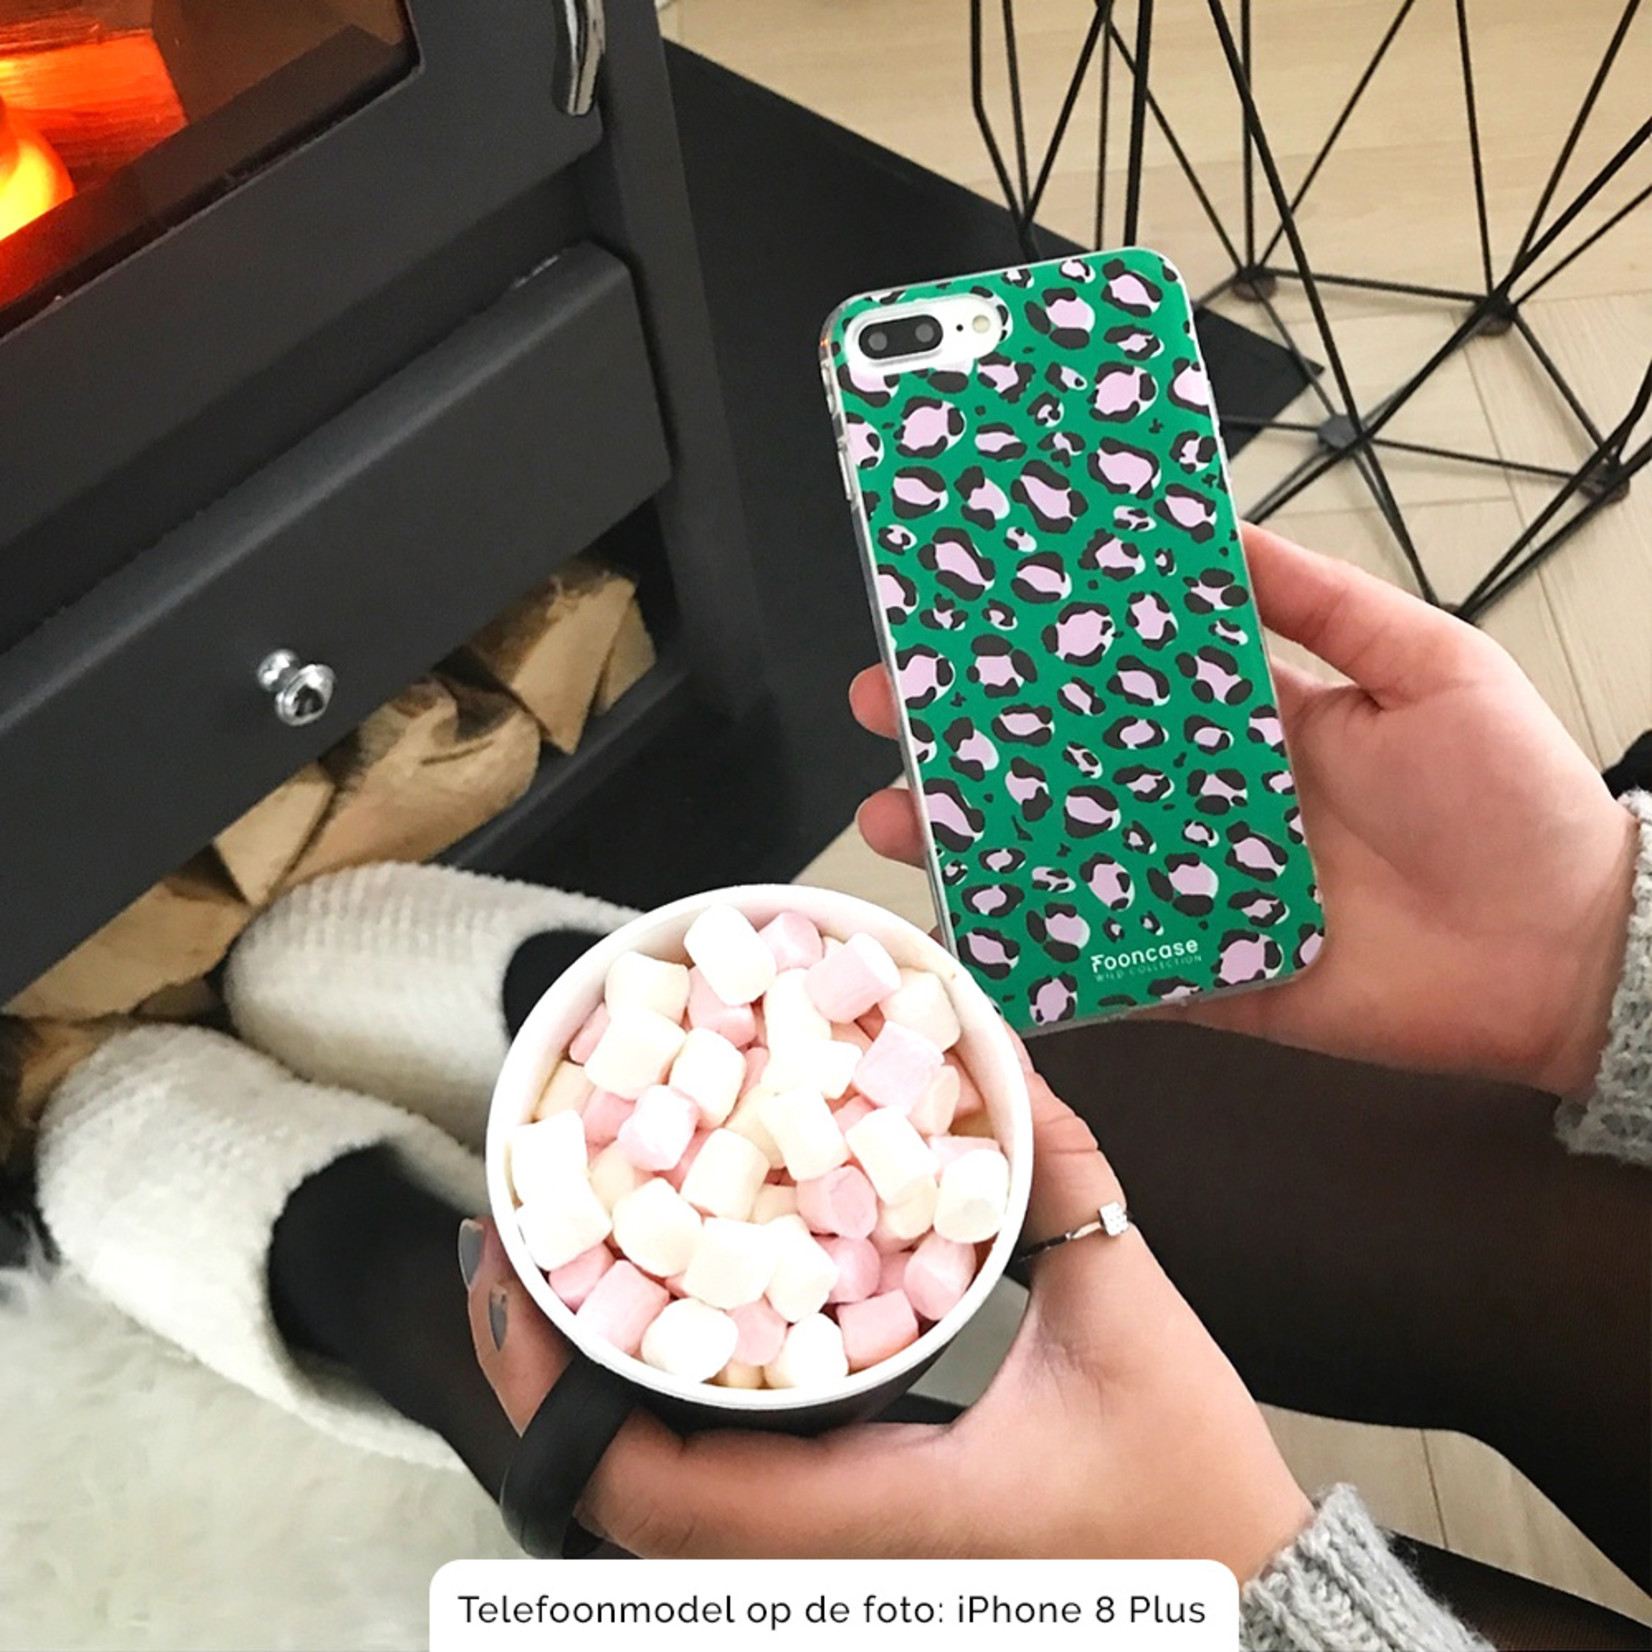 FOONCASE Samsung Galaxy S10 hoesje TPU Soft Case - Back Cover - WILD COLLECTION / Luipaard / Leopard print / Groen